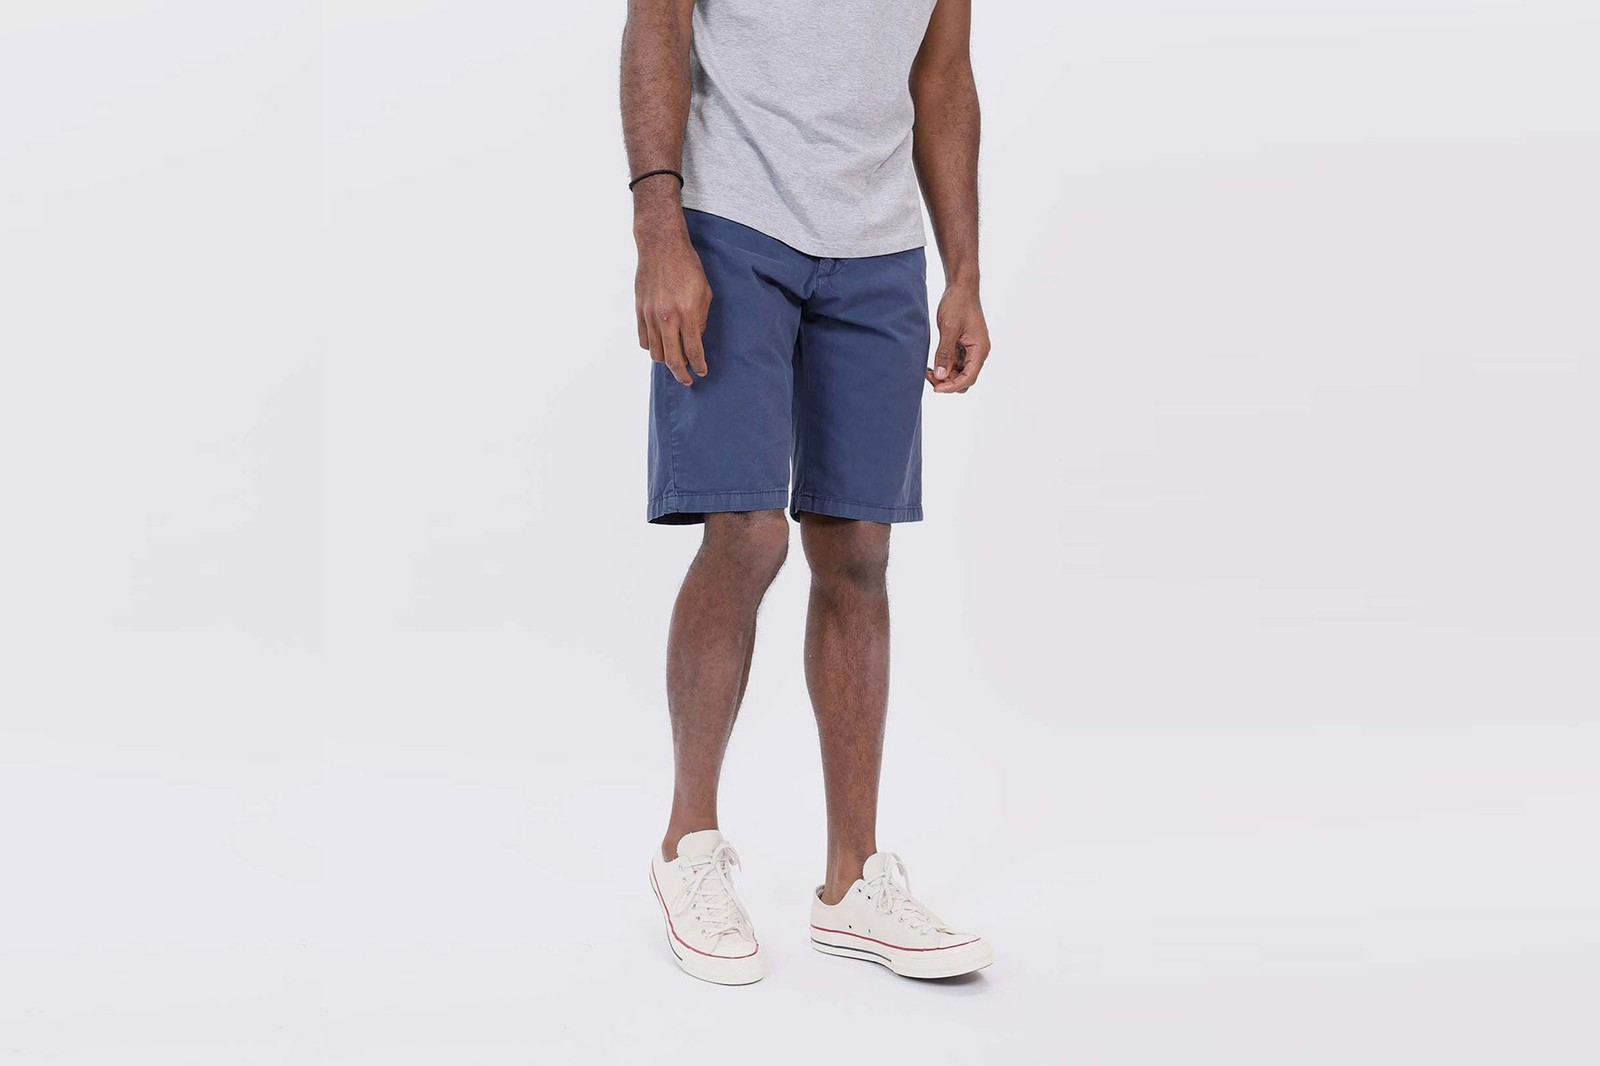 SHORTS SELECTION GUCCI OFF-WHITE